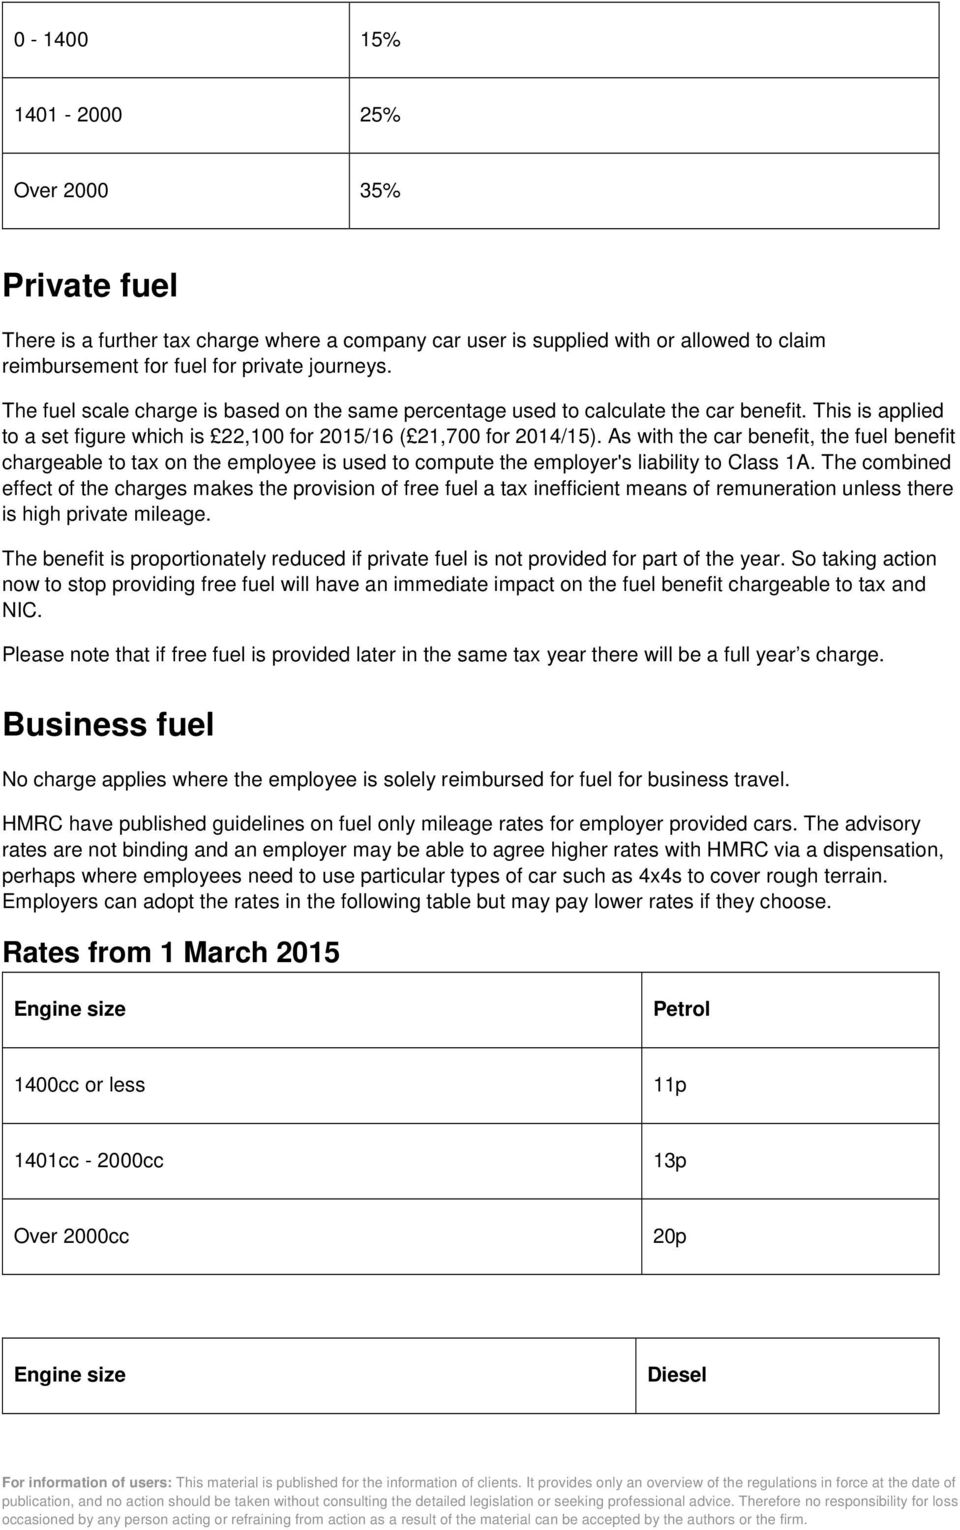 As with the car benefit, the fuel benefit chargeable to tax on the employee is used to compute the employer's liability to Class 1A.